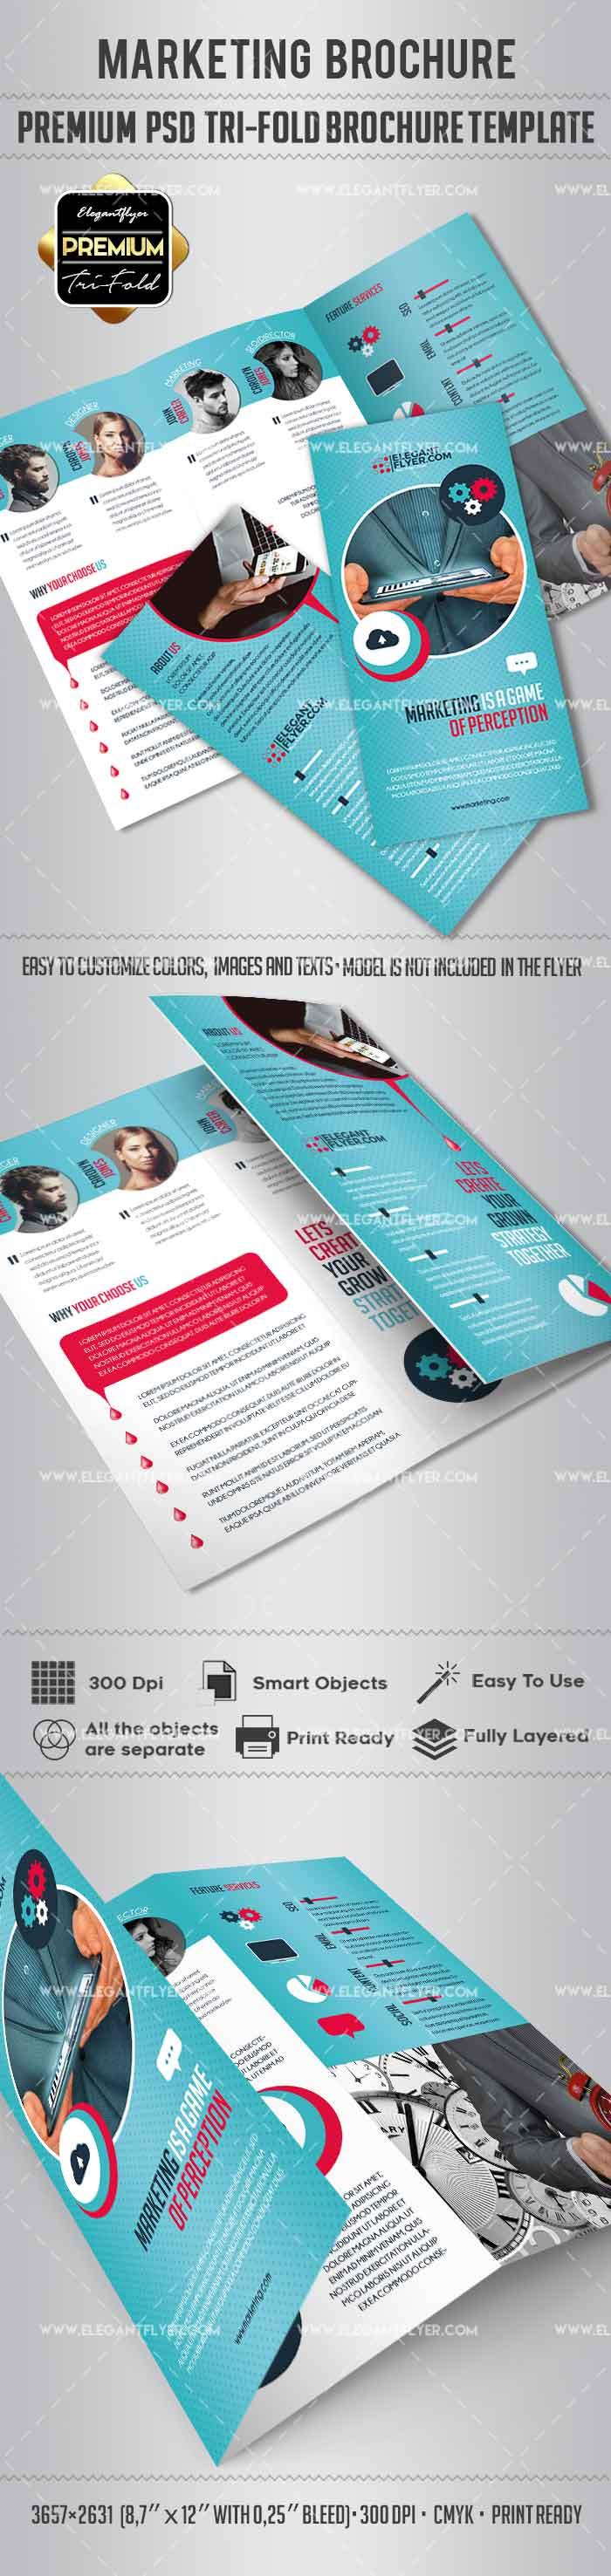 Tri fold brochure for marketing by elegantflyer for Brochure photoshop templates